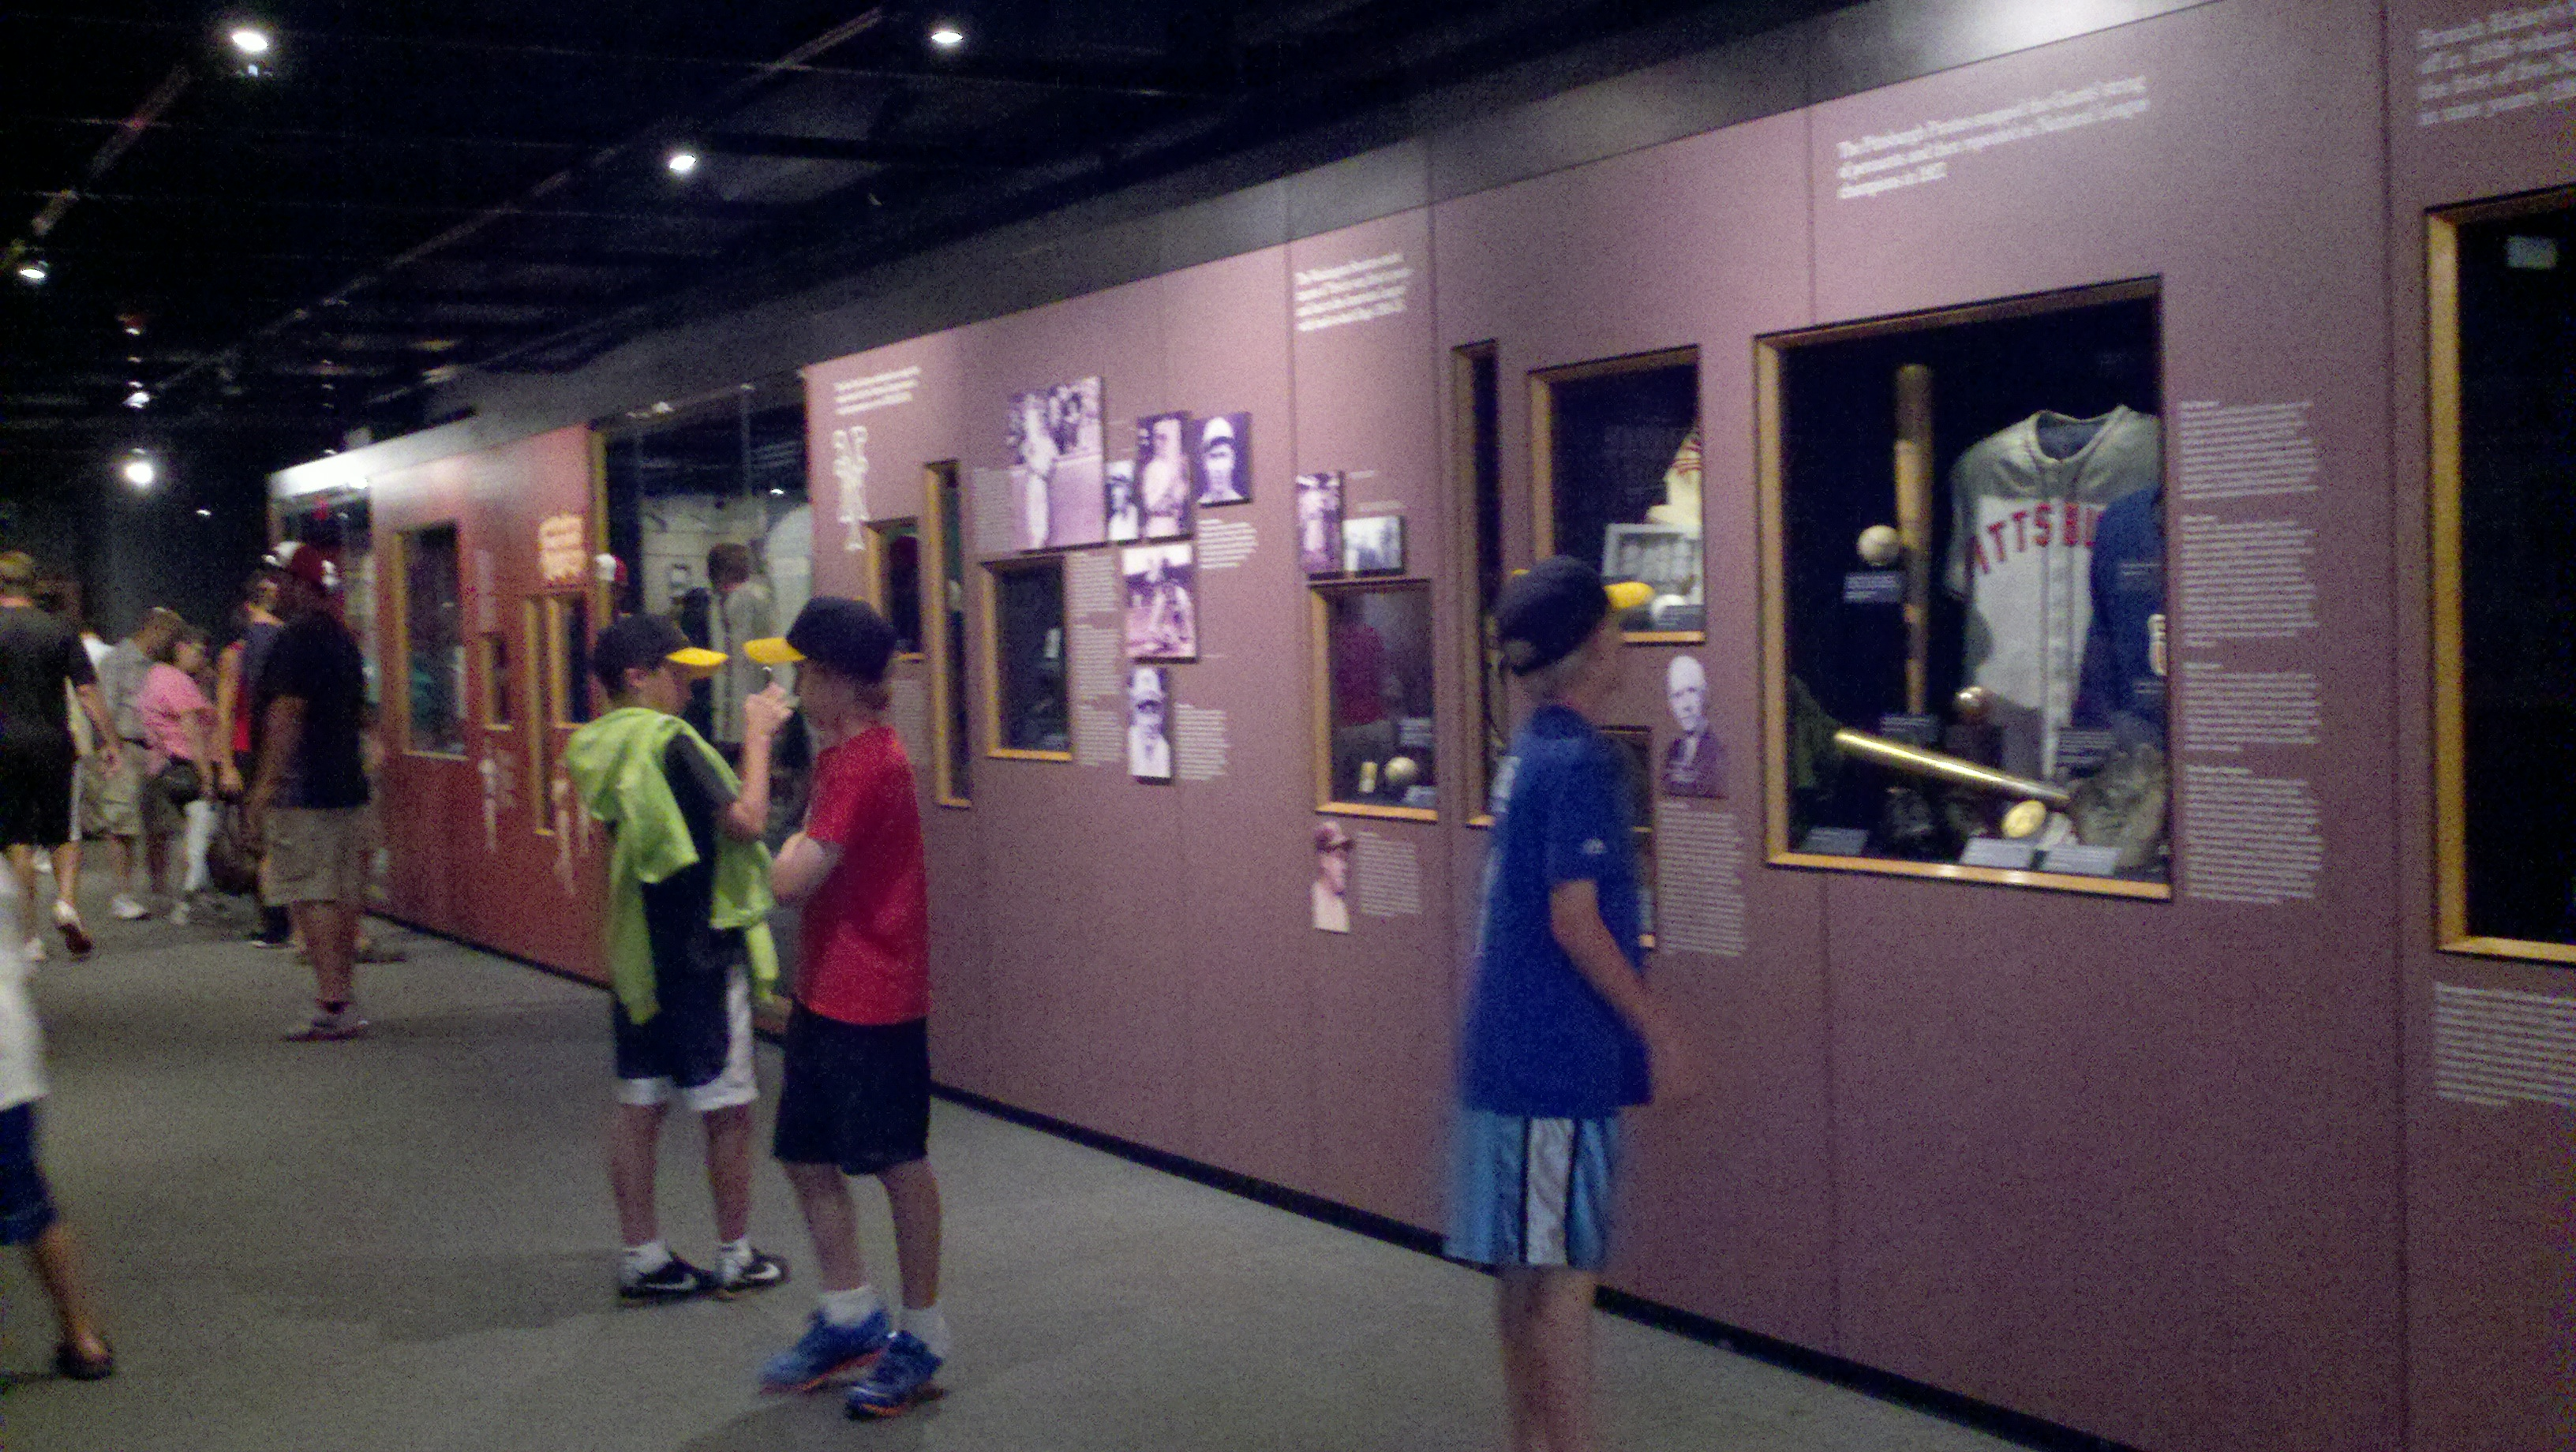 Inside the Hall of Fame